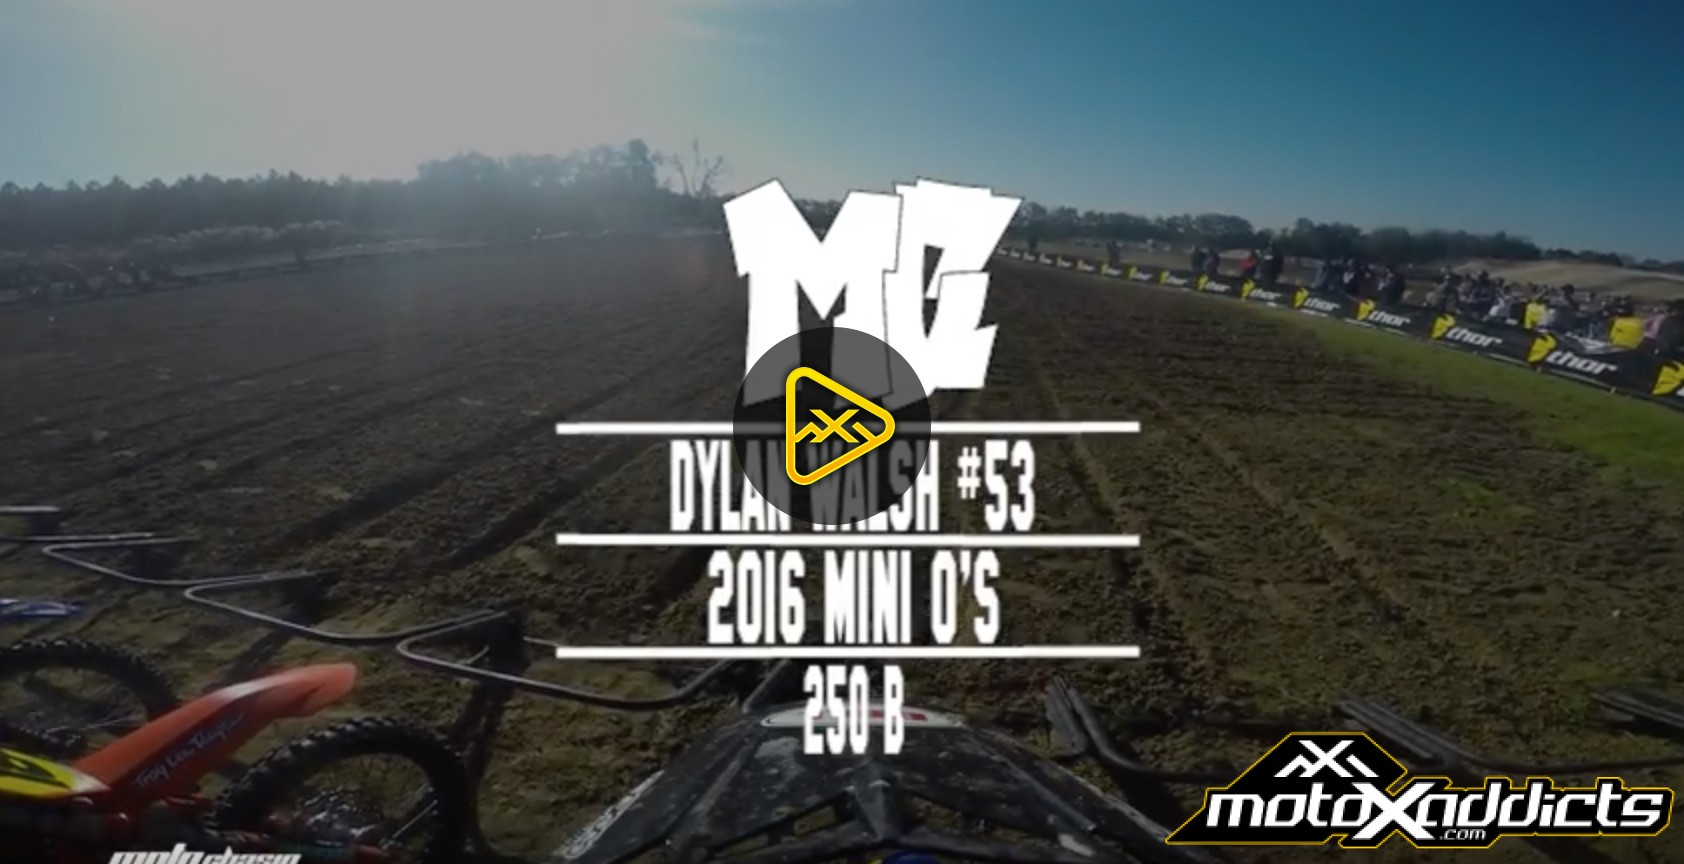 Helmet Cam: Dylan Walsh – Mini O's 250B – What Just Happened?